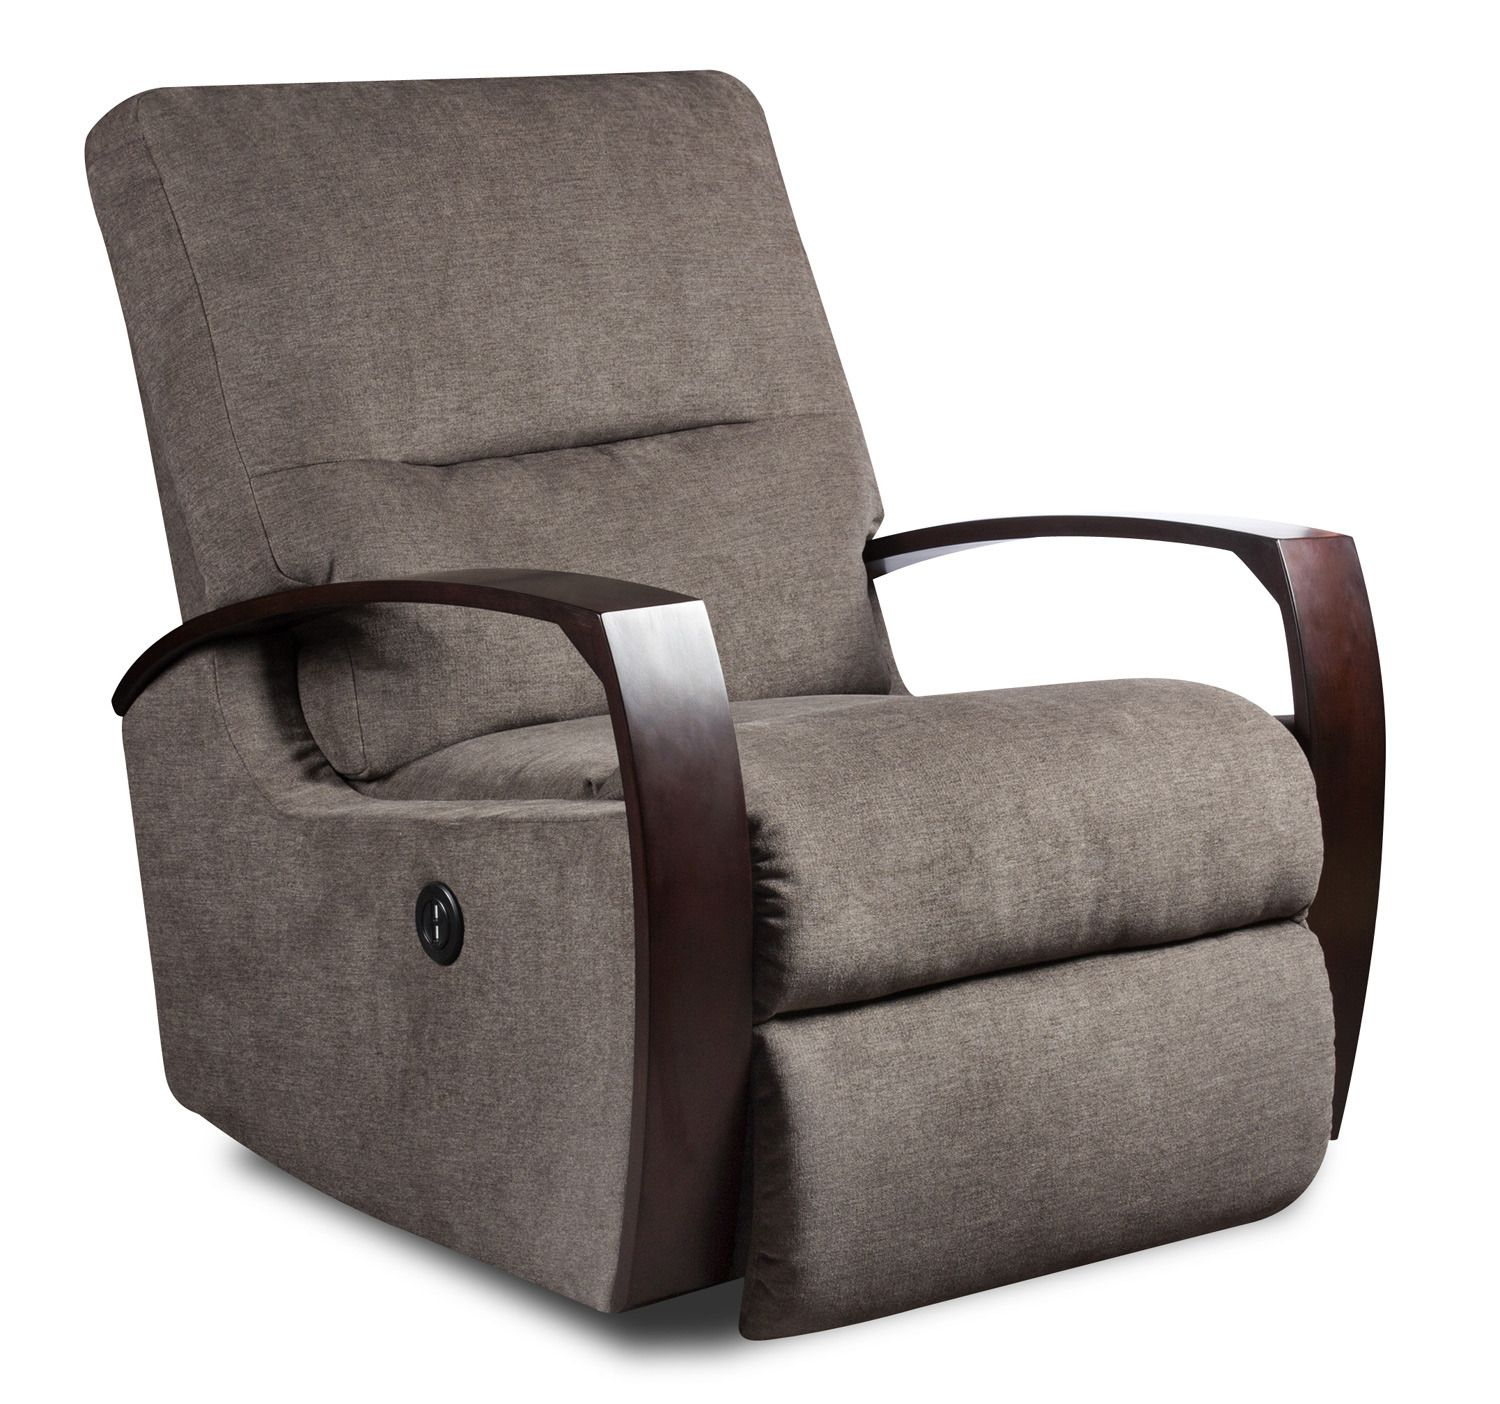 Posh Rocker Recliner By Southern Motion Furniture Home Gallery Stores Recliner Chair Best Recliner Chair Rocker Recliner Chair